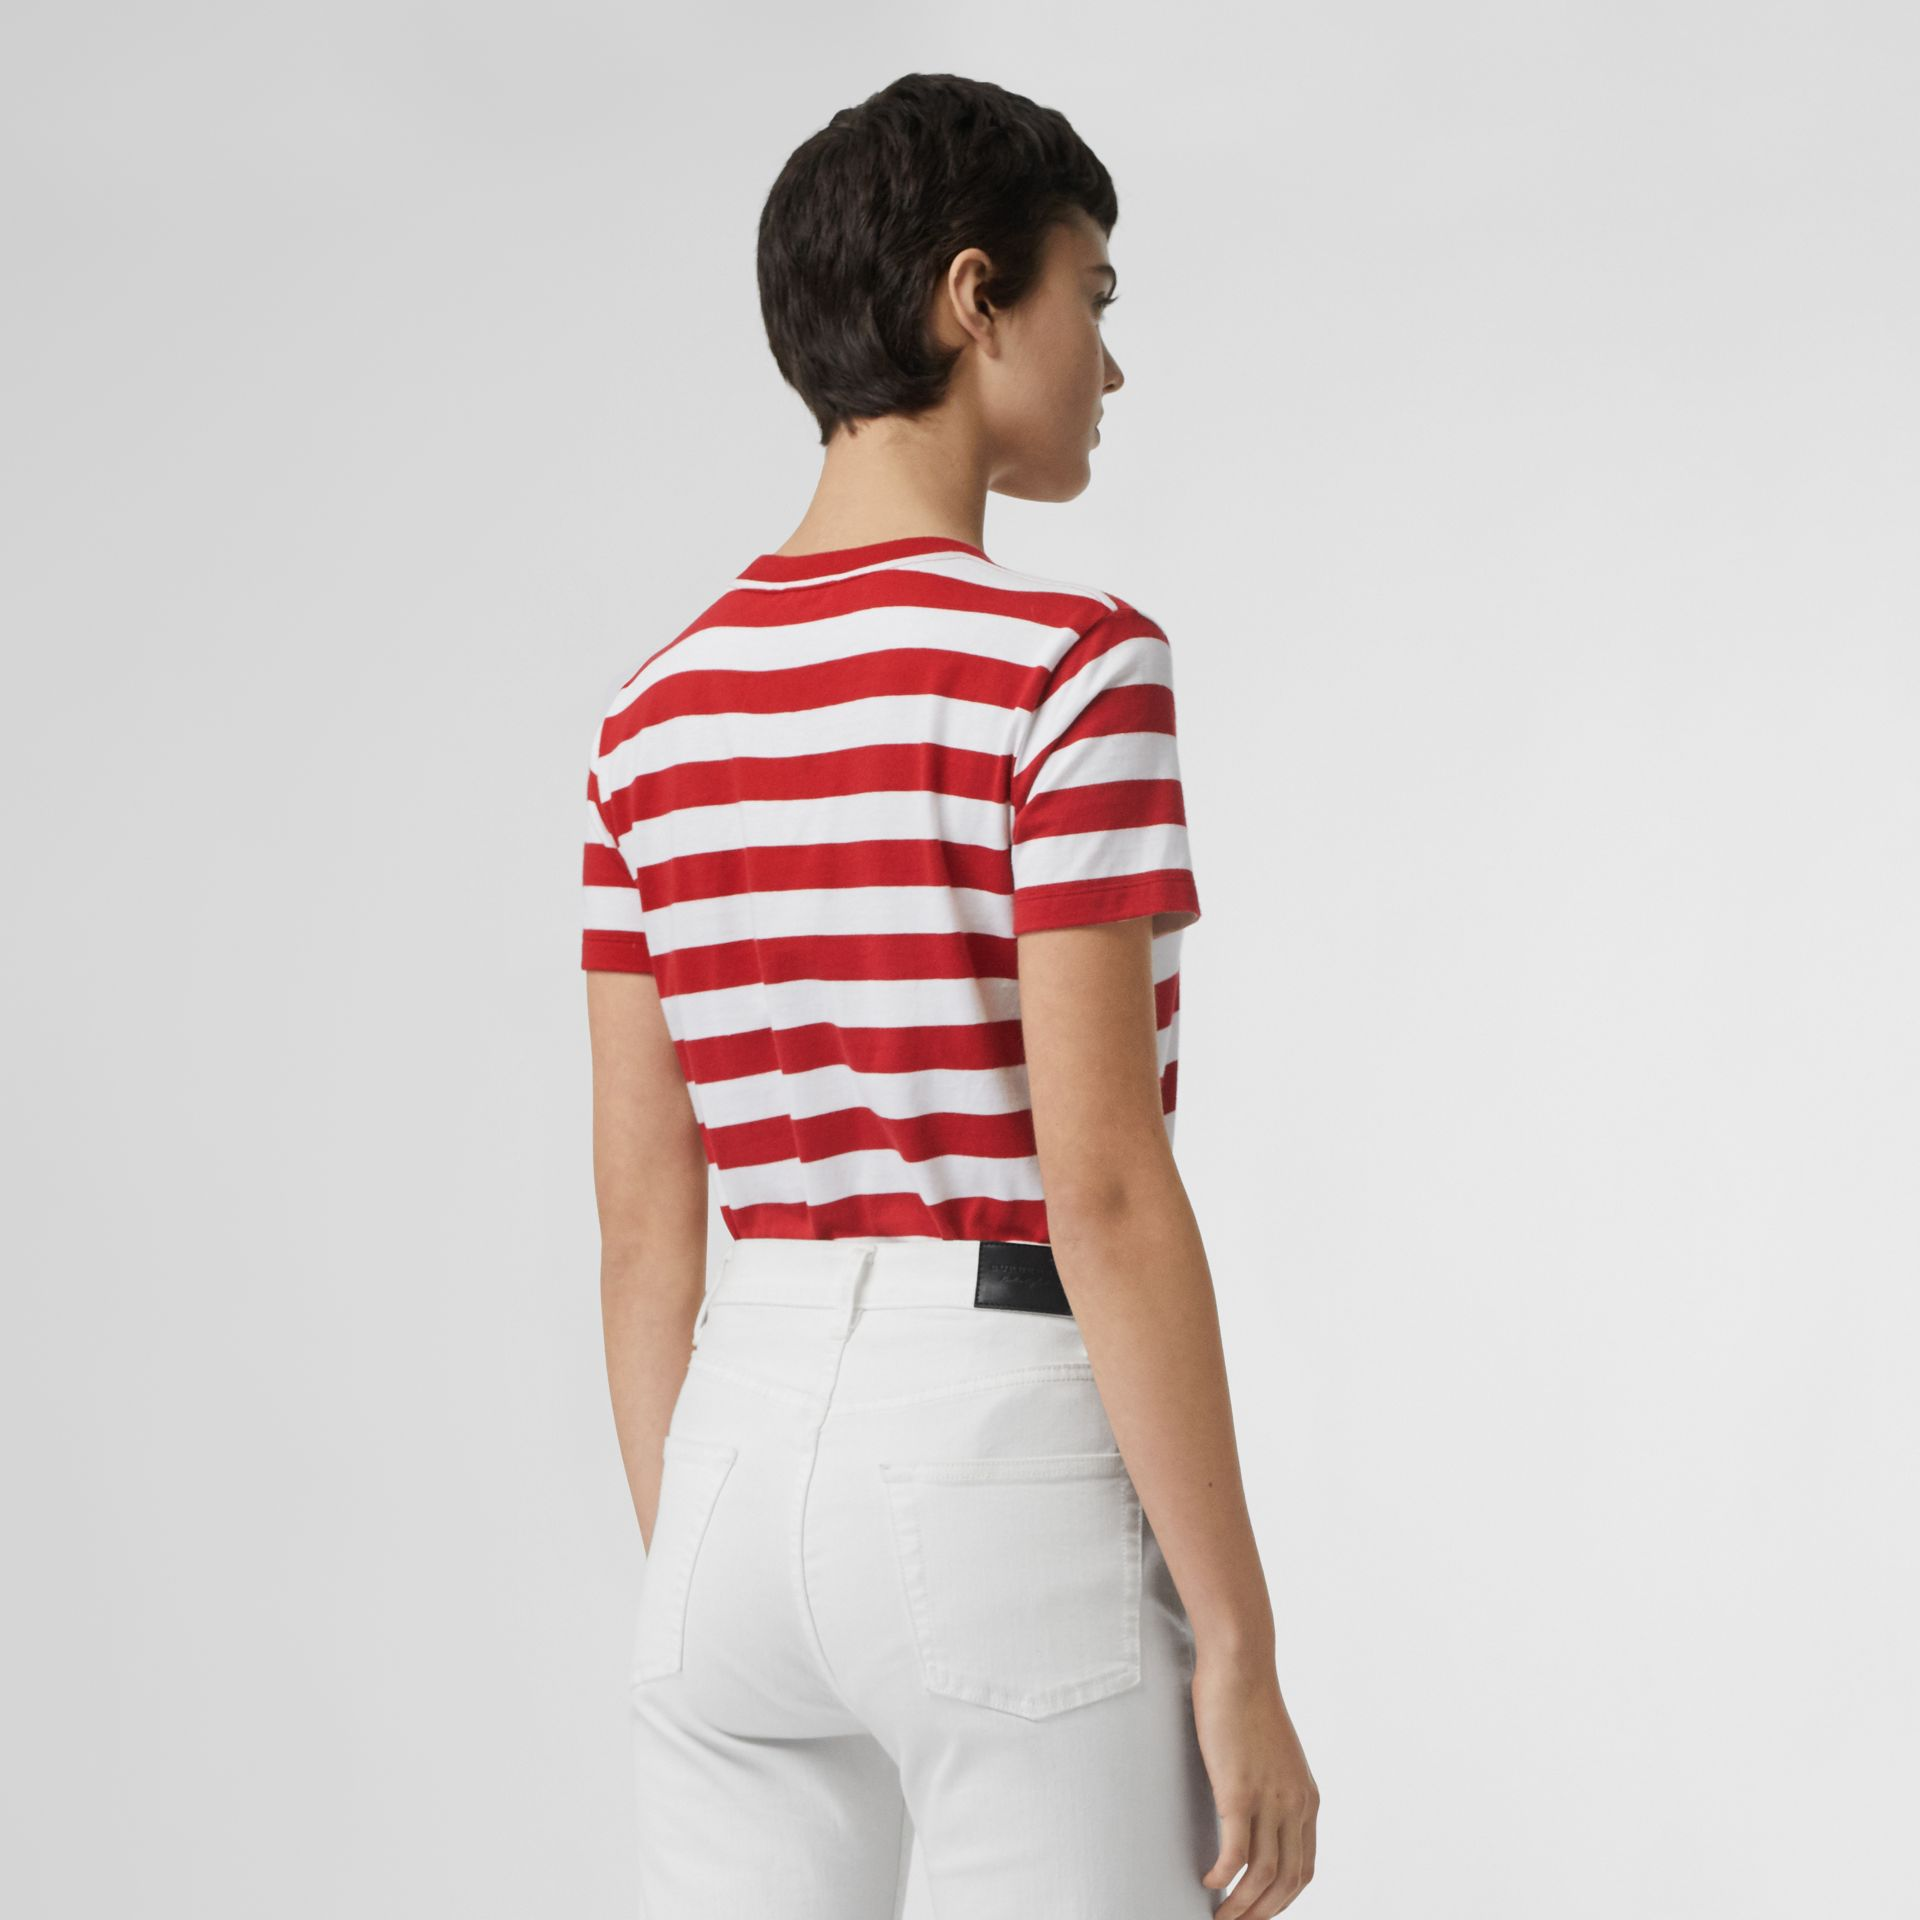 Crest Appliqué Striped Cotton T-shirt in Cadmium Red - Women | Burberry Canada - gallery image 2